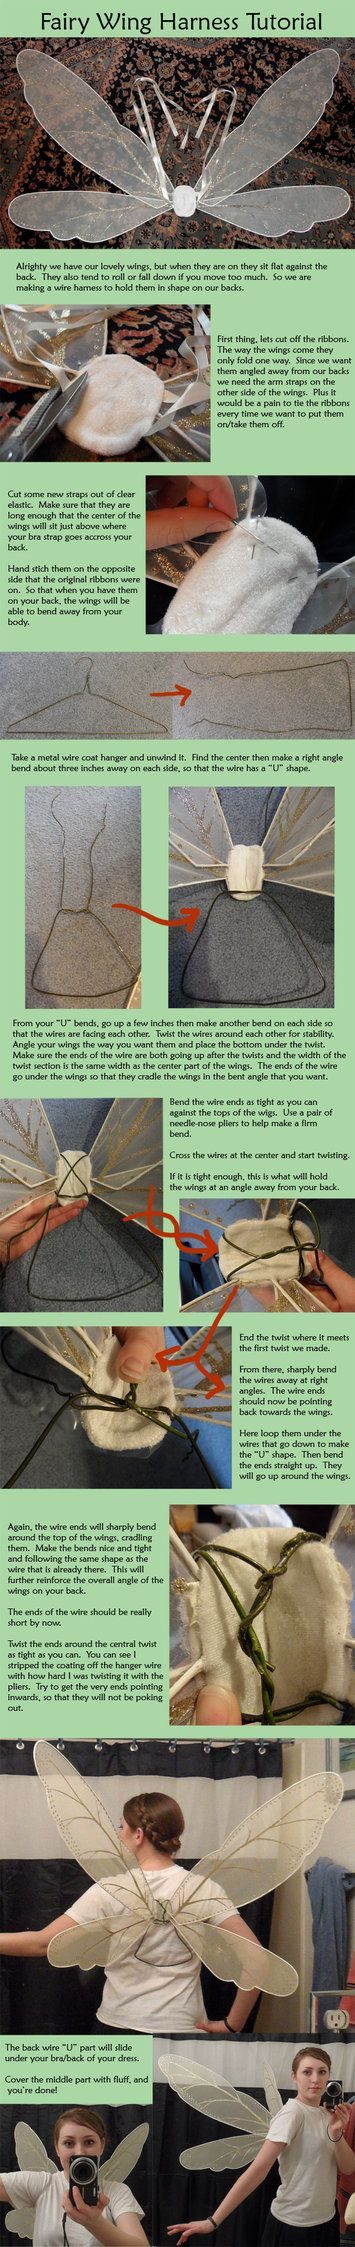 Fairy Wing Wire Harness Tutorial By Naerko On Deviantart Costuming Materials